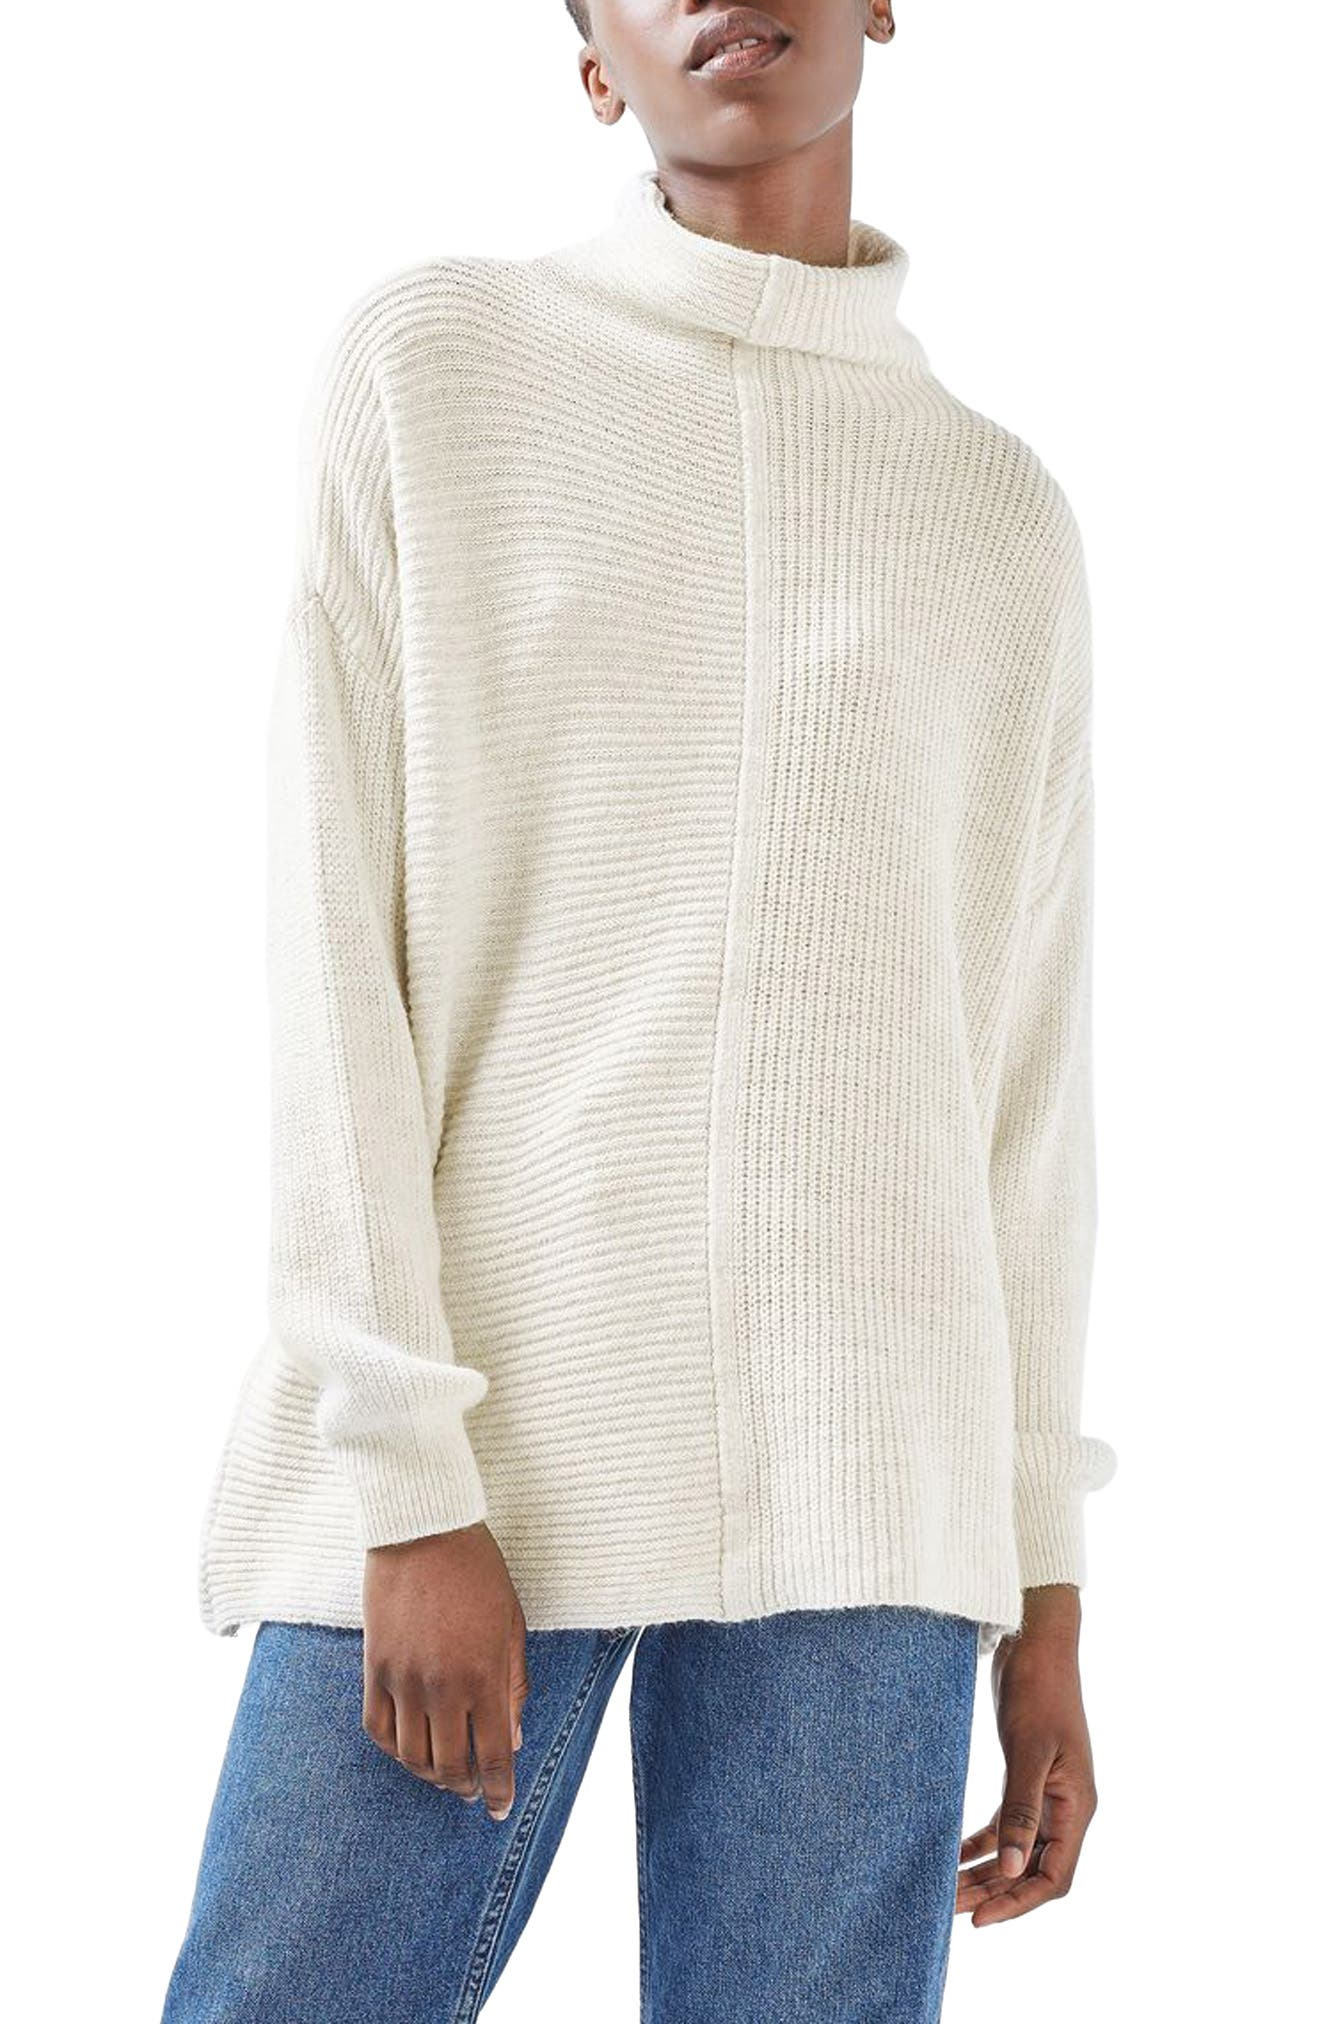 Main Image - Topshop Funnel Neck Mixed Knit Sweater (Regular & Petite)